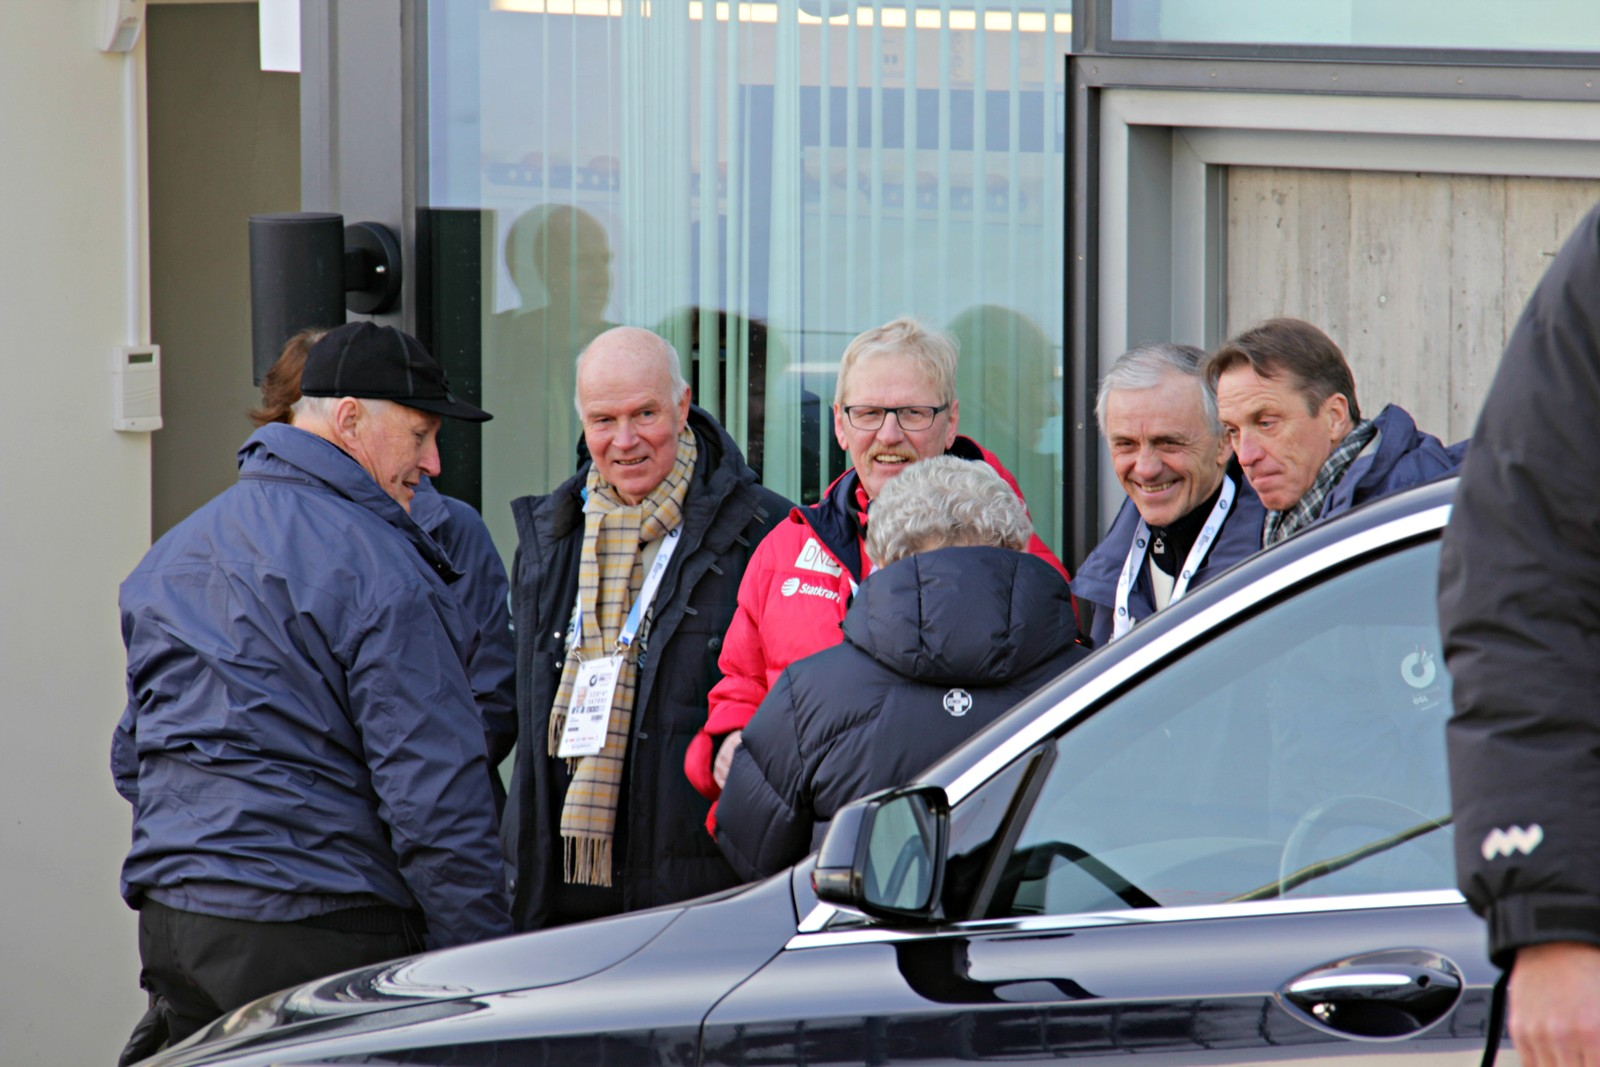 11 March: HM King Harald and his sister HH Princess Astrid arrives at the venue and is welcomed by the biathlon top leaders.